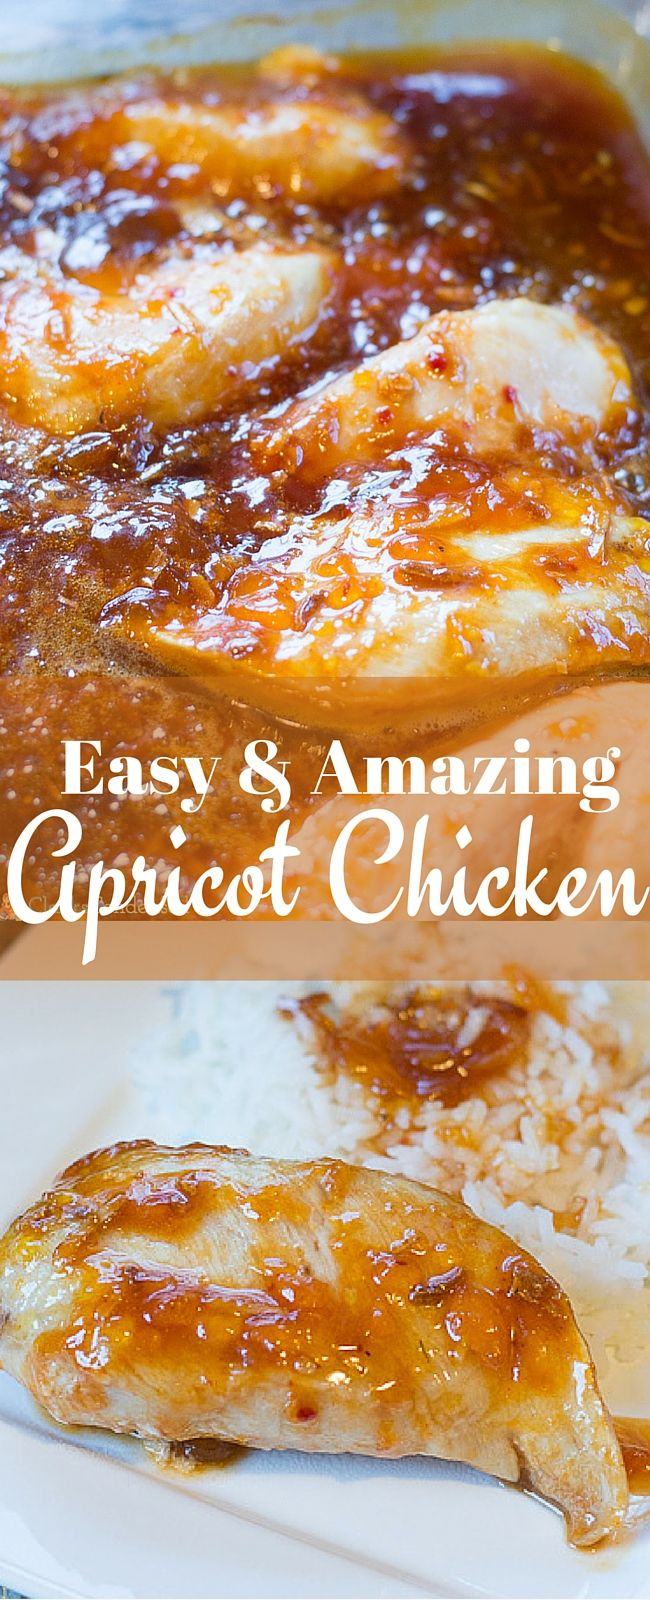 Easy Apricot Chicken #favoriterecipes